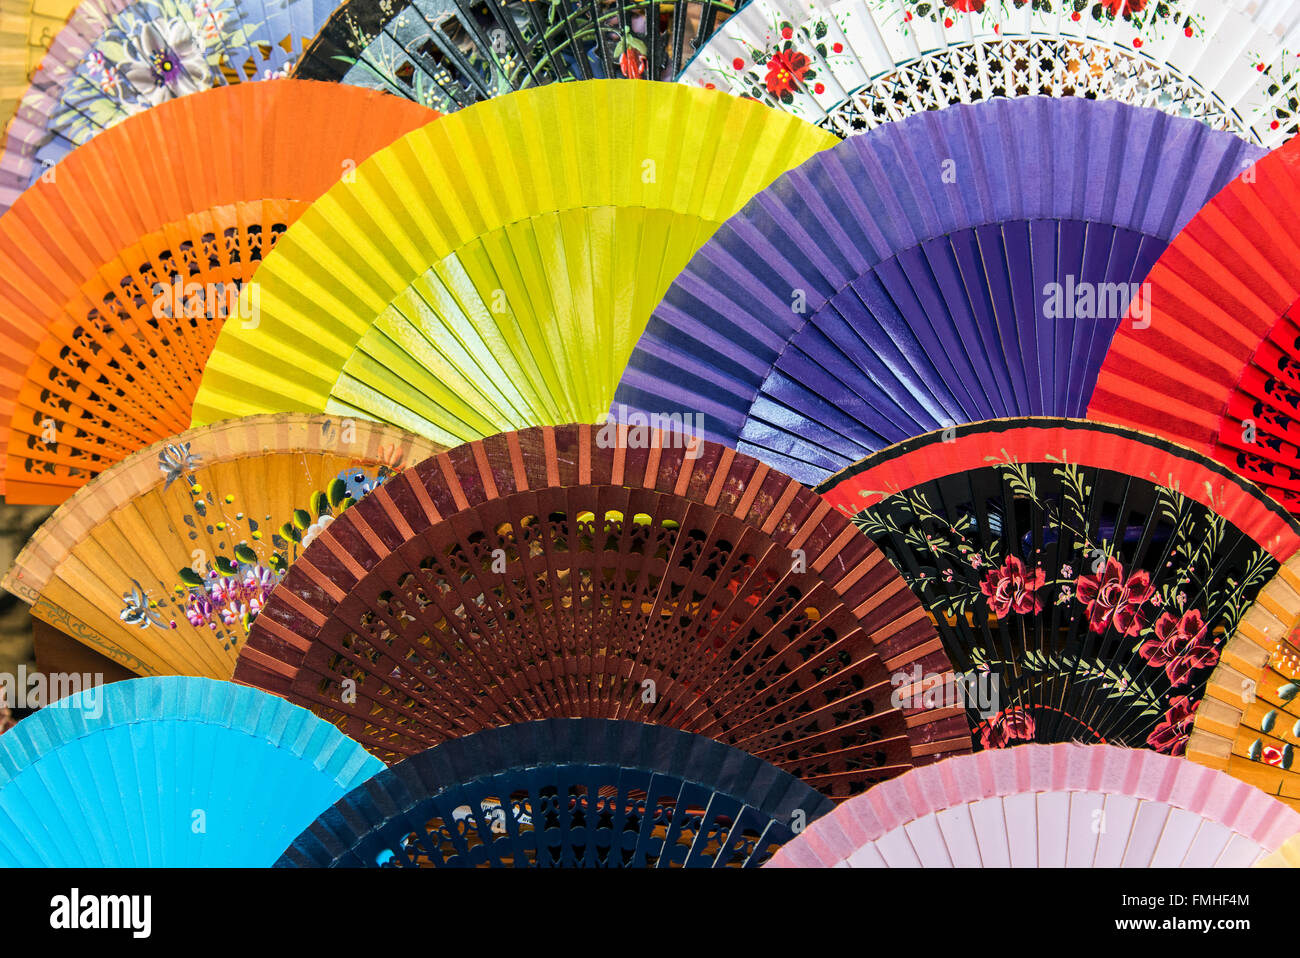 Selection of souvenir Spanish fans for sale in Seville, Andalusia, Spain - Stock Image